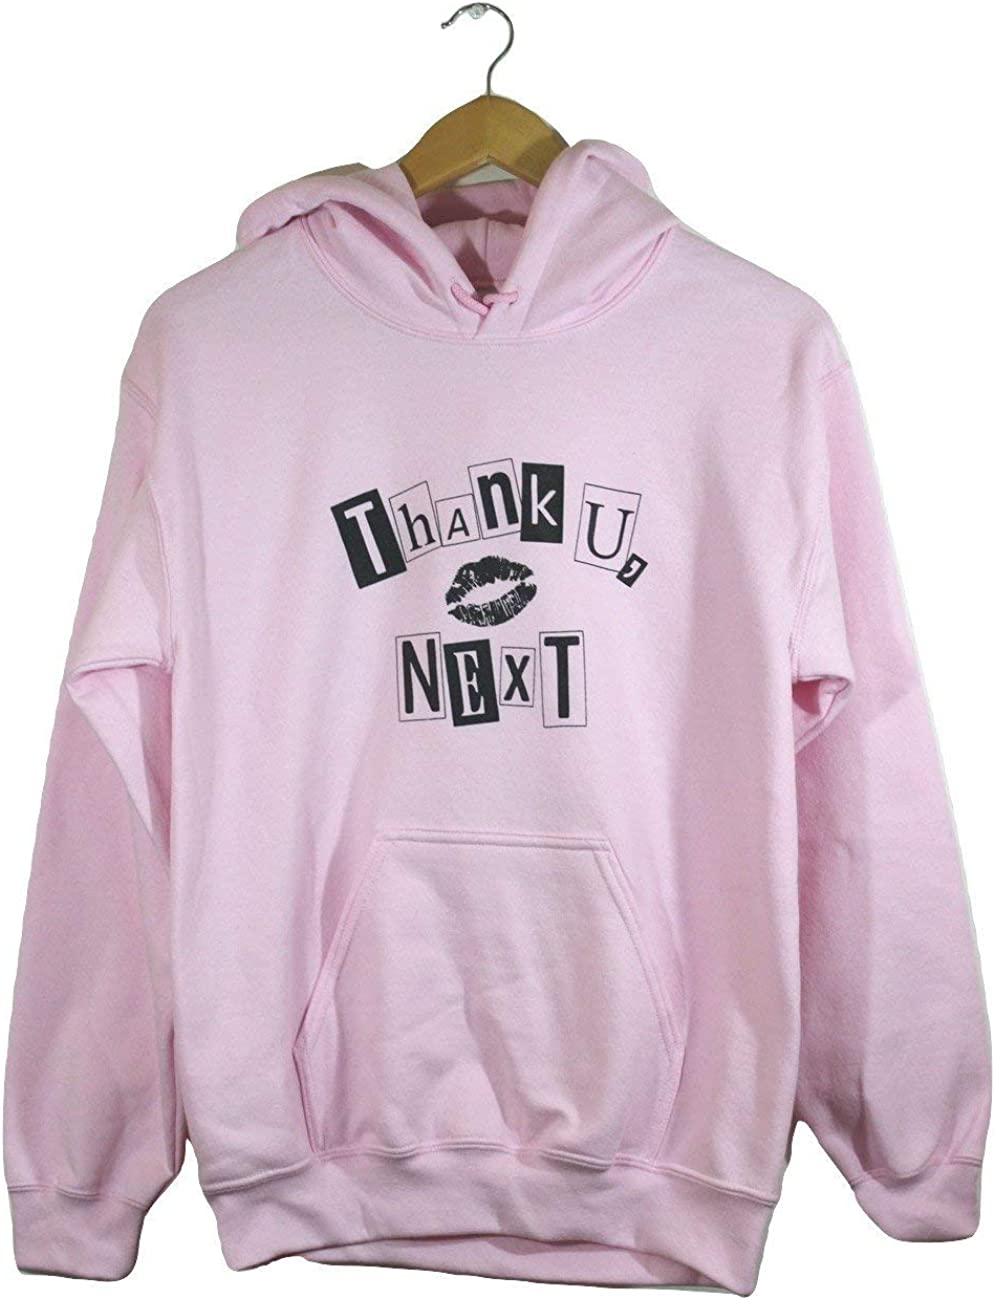 Thank Dedication U Next Animer and price revision Graphic Hoodie Pink Light